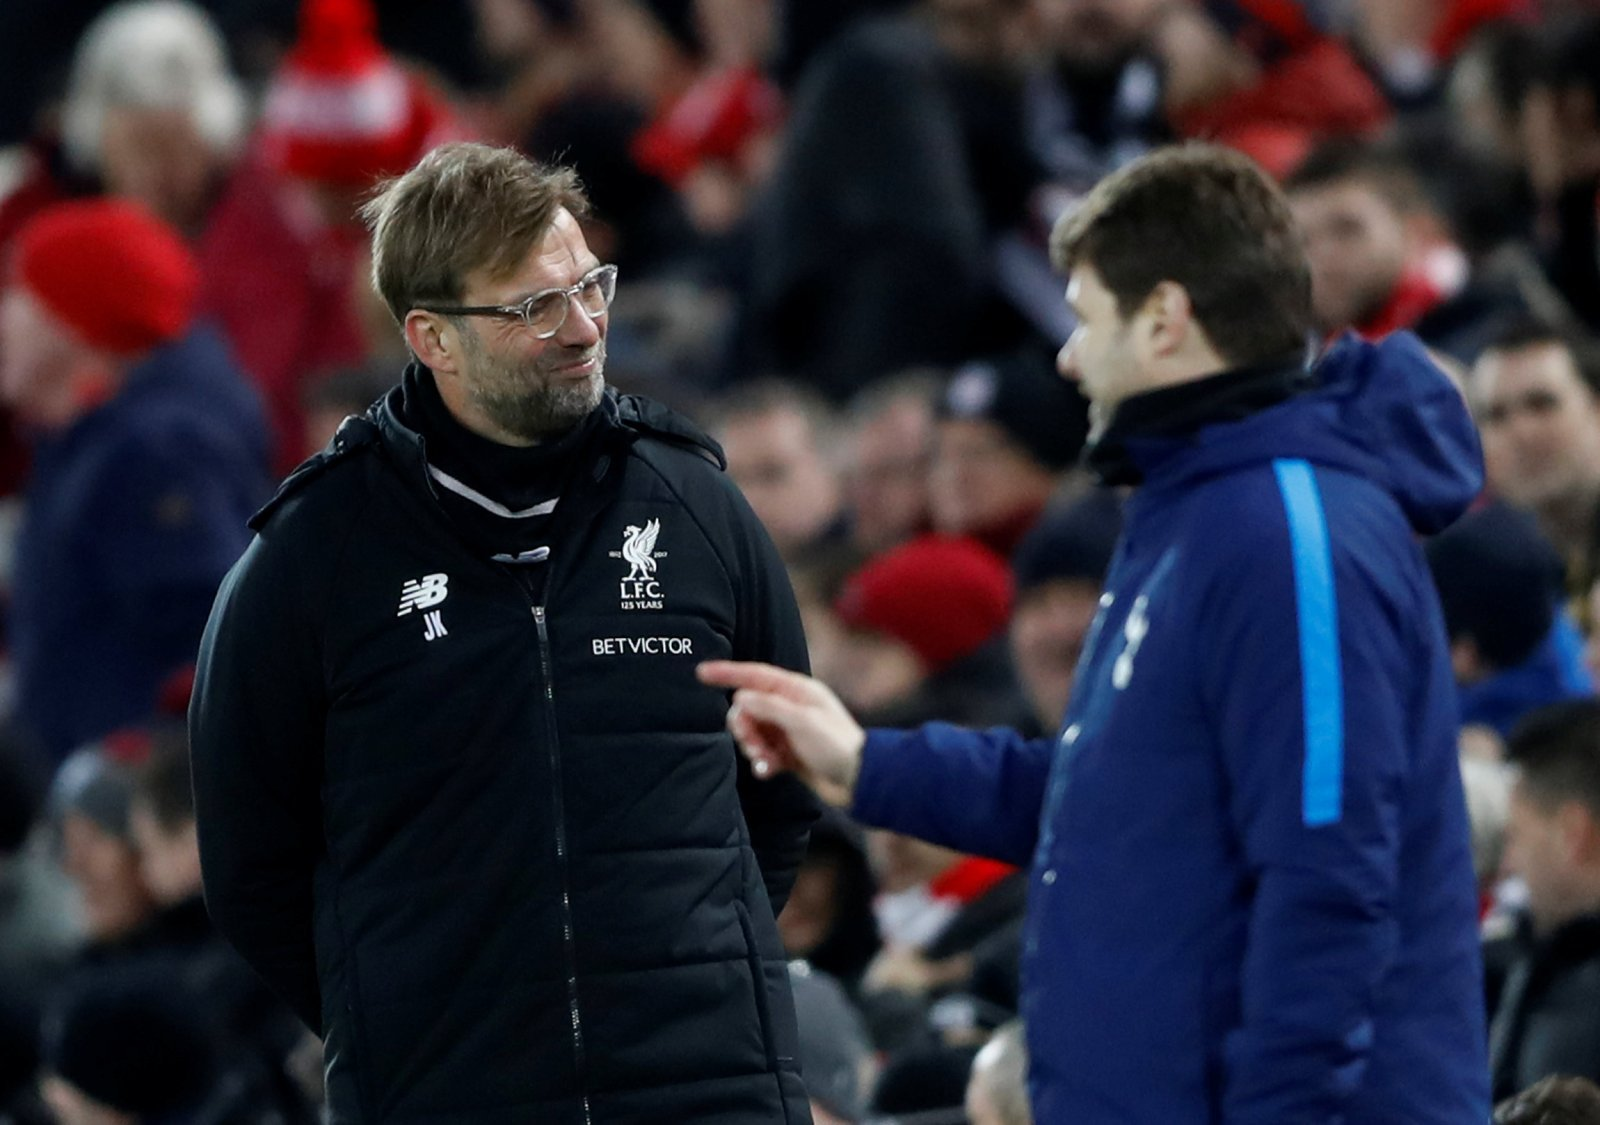 Paul Merson delivers view on Liverpool's trip to Tottenham, but he's got it wrong